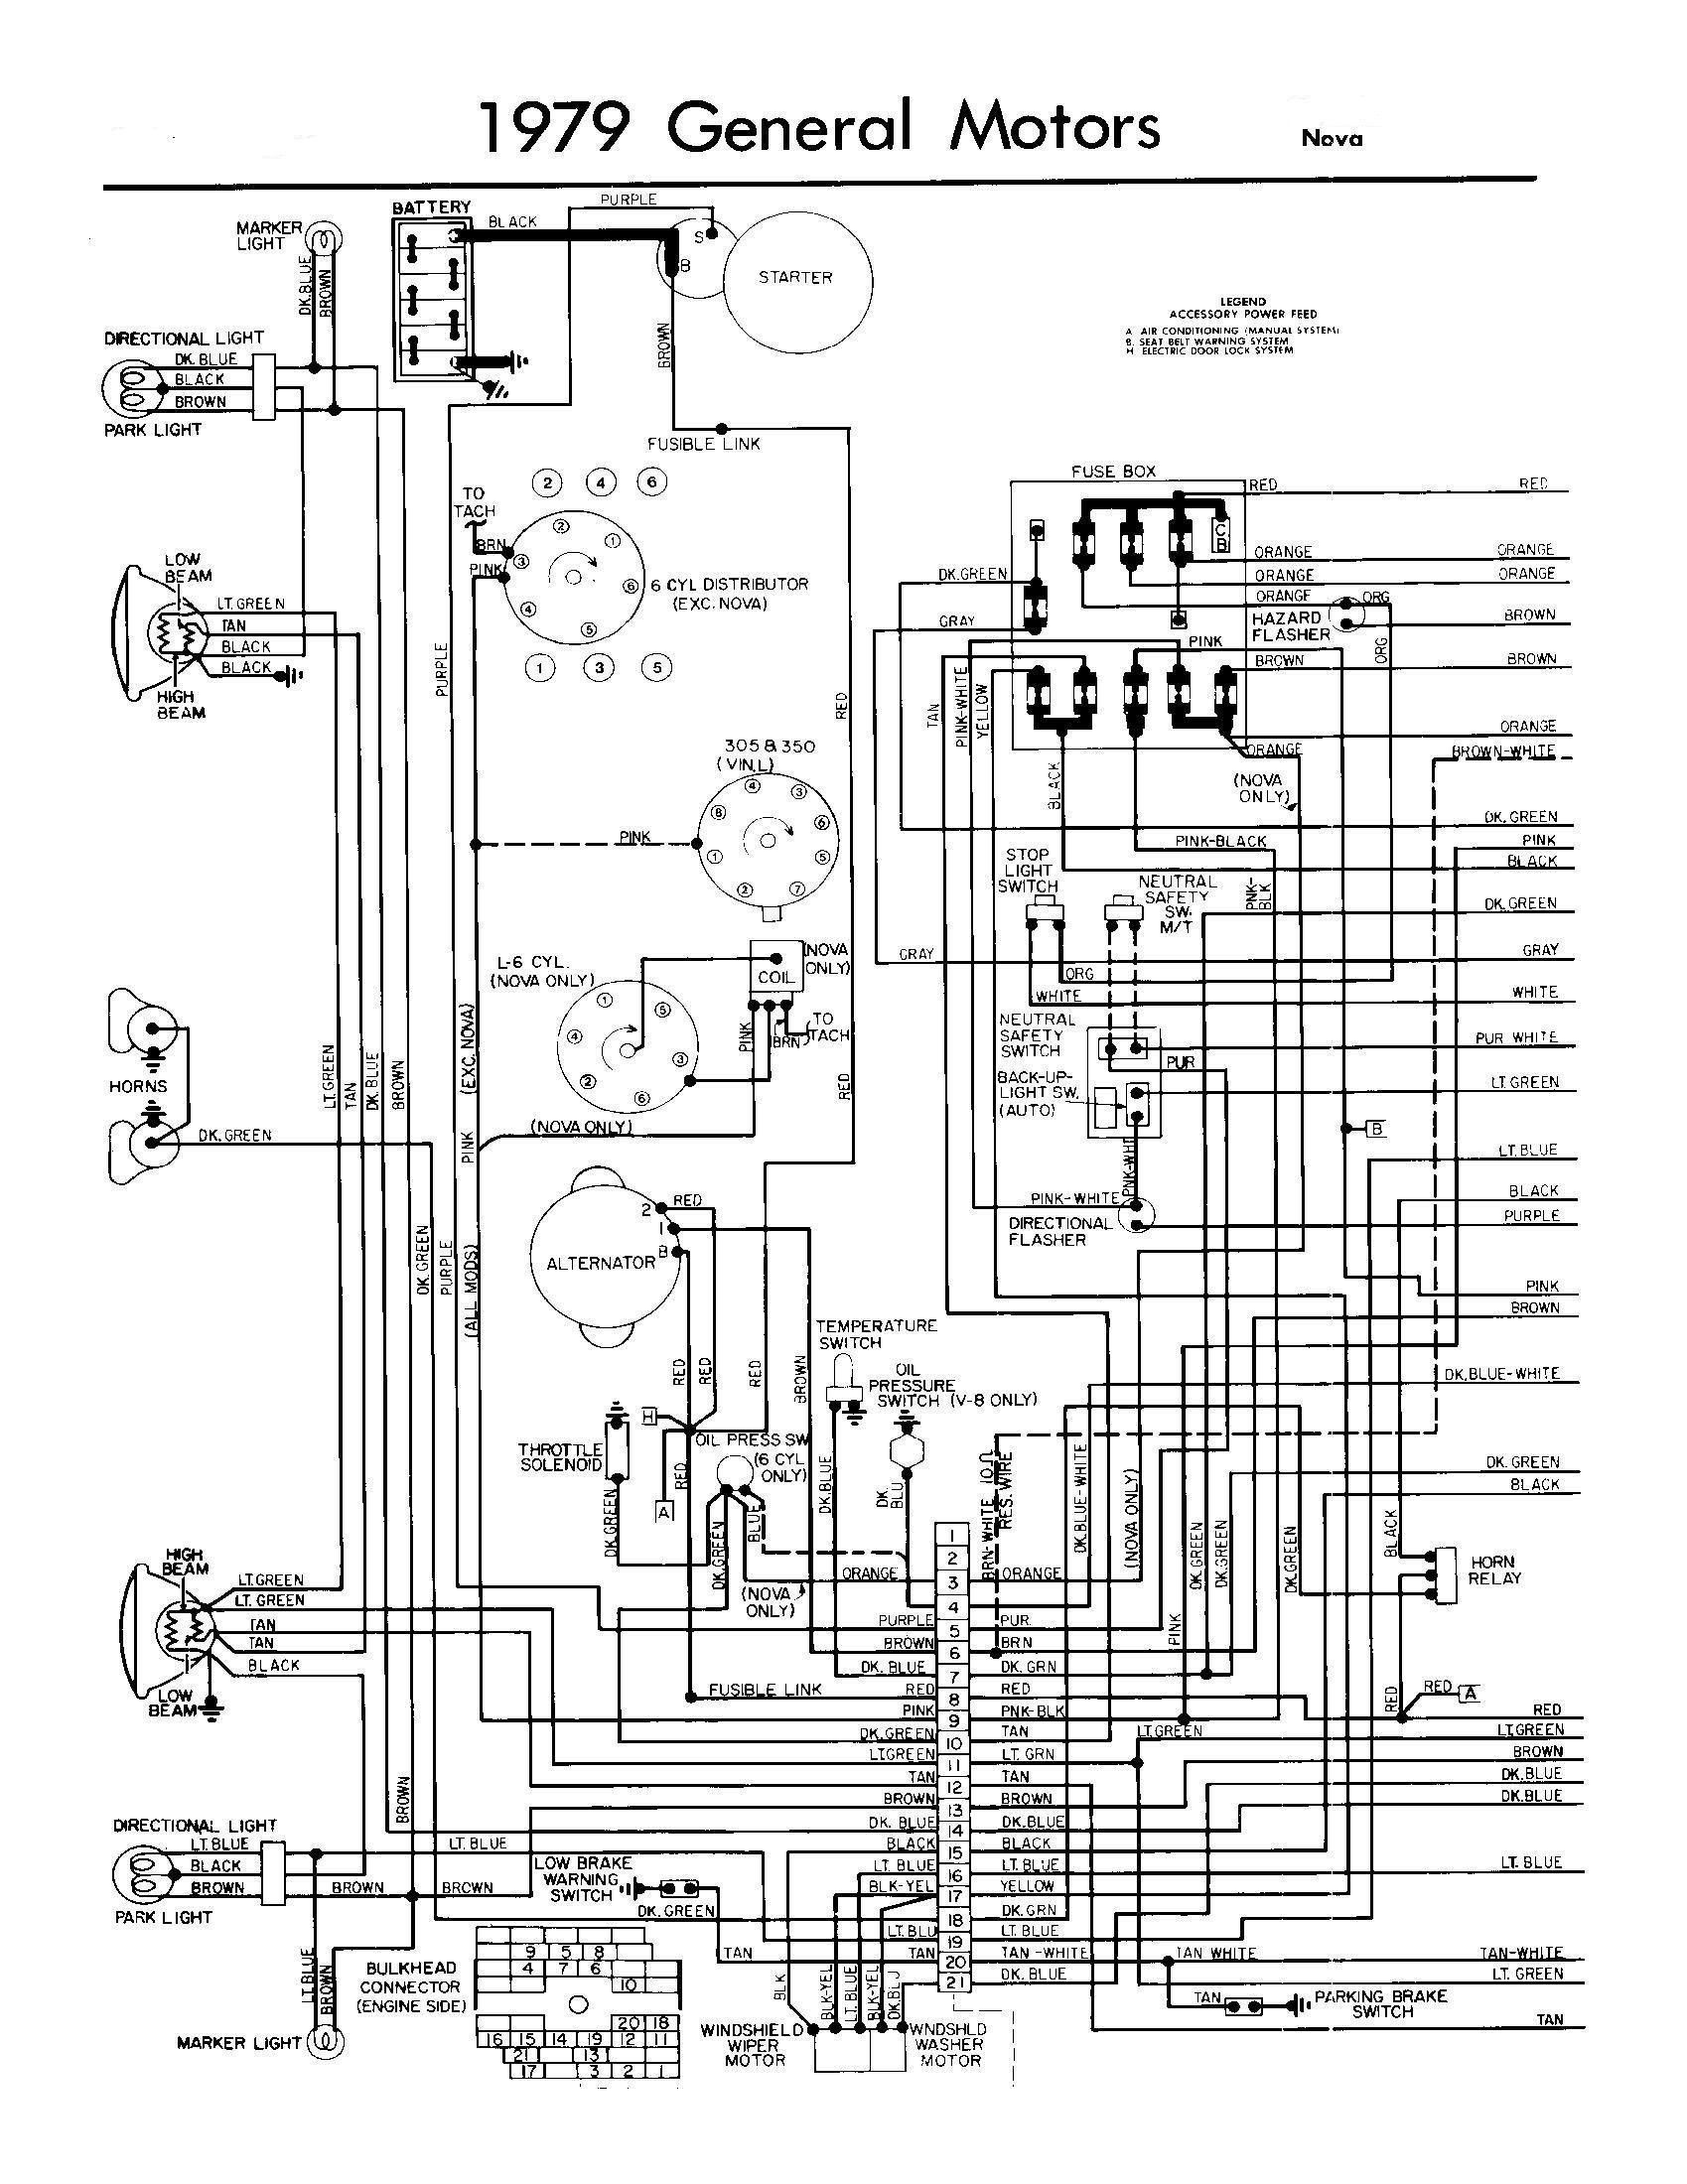 New R33 Alternator Wiring Diagram  Diagrams  Digramssample  Diagramimages In 2019